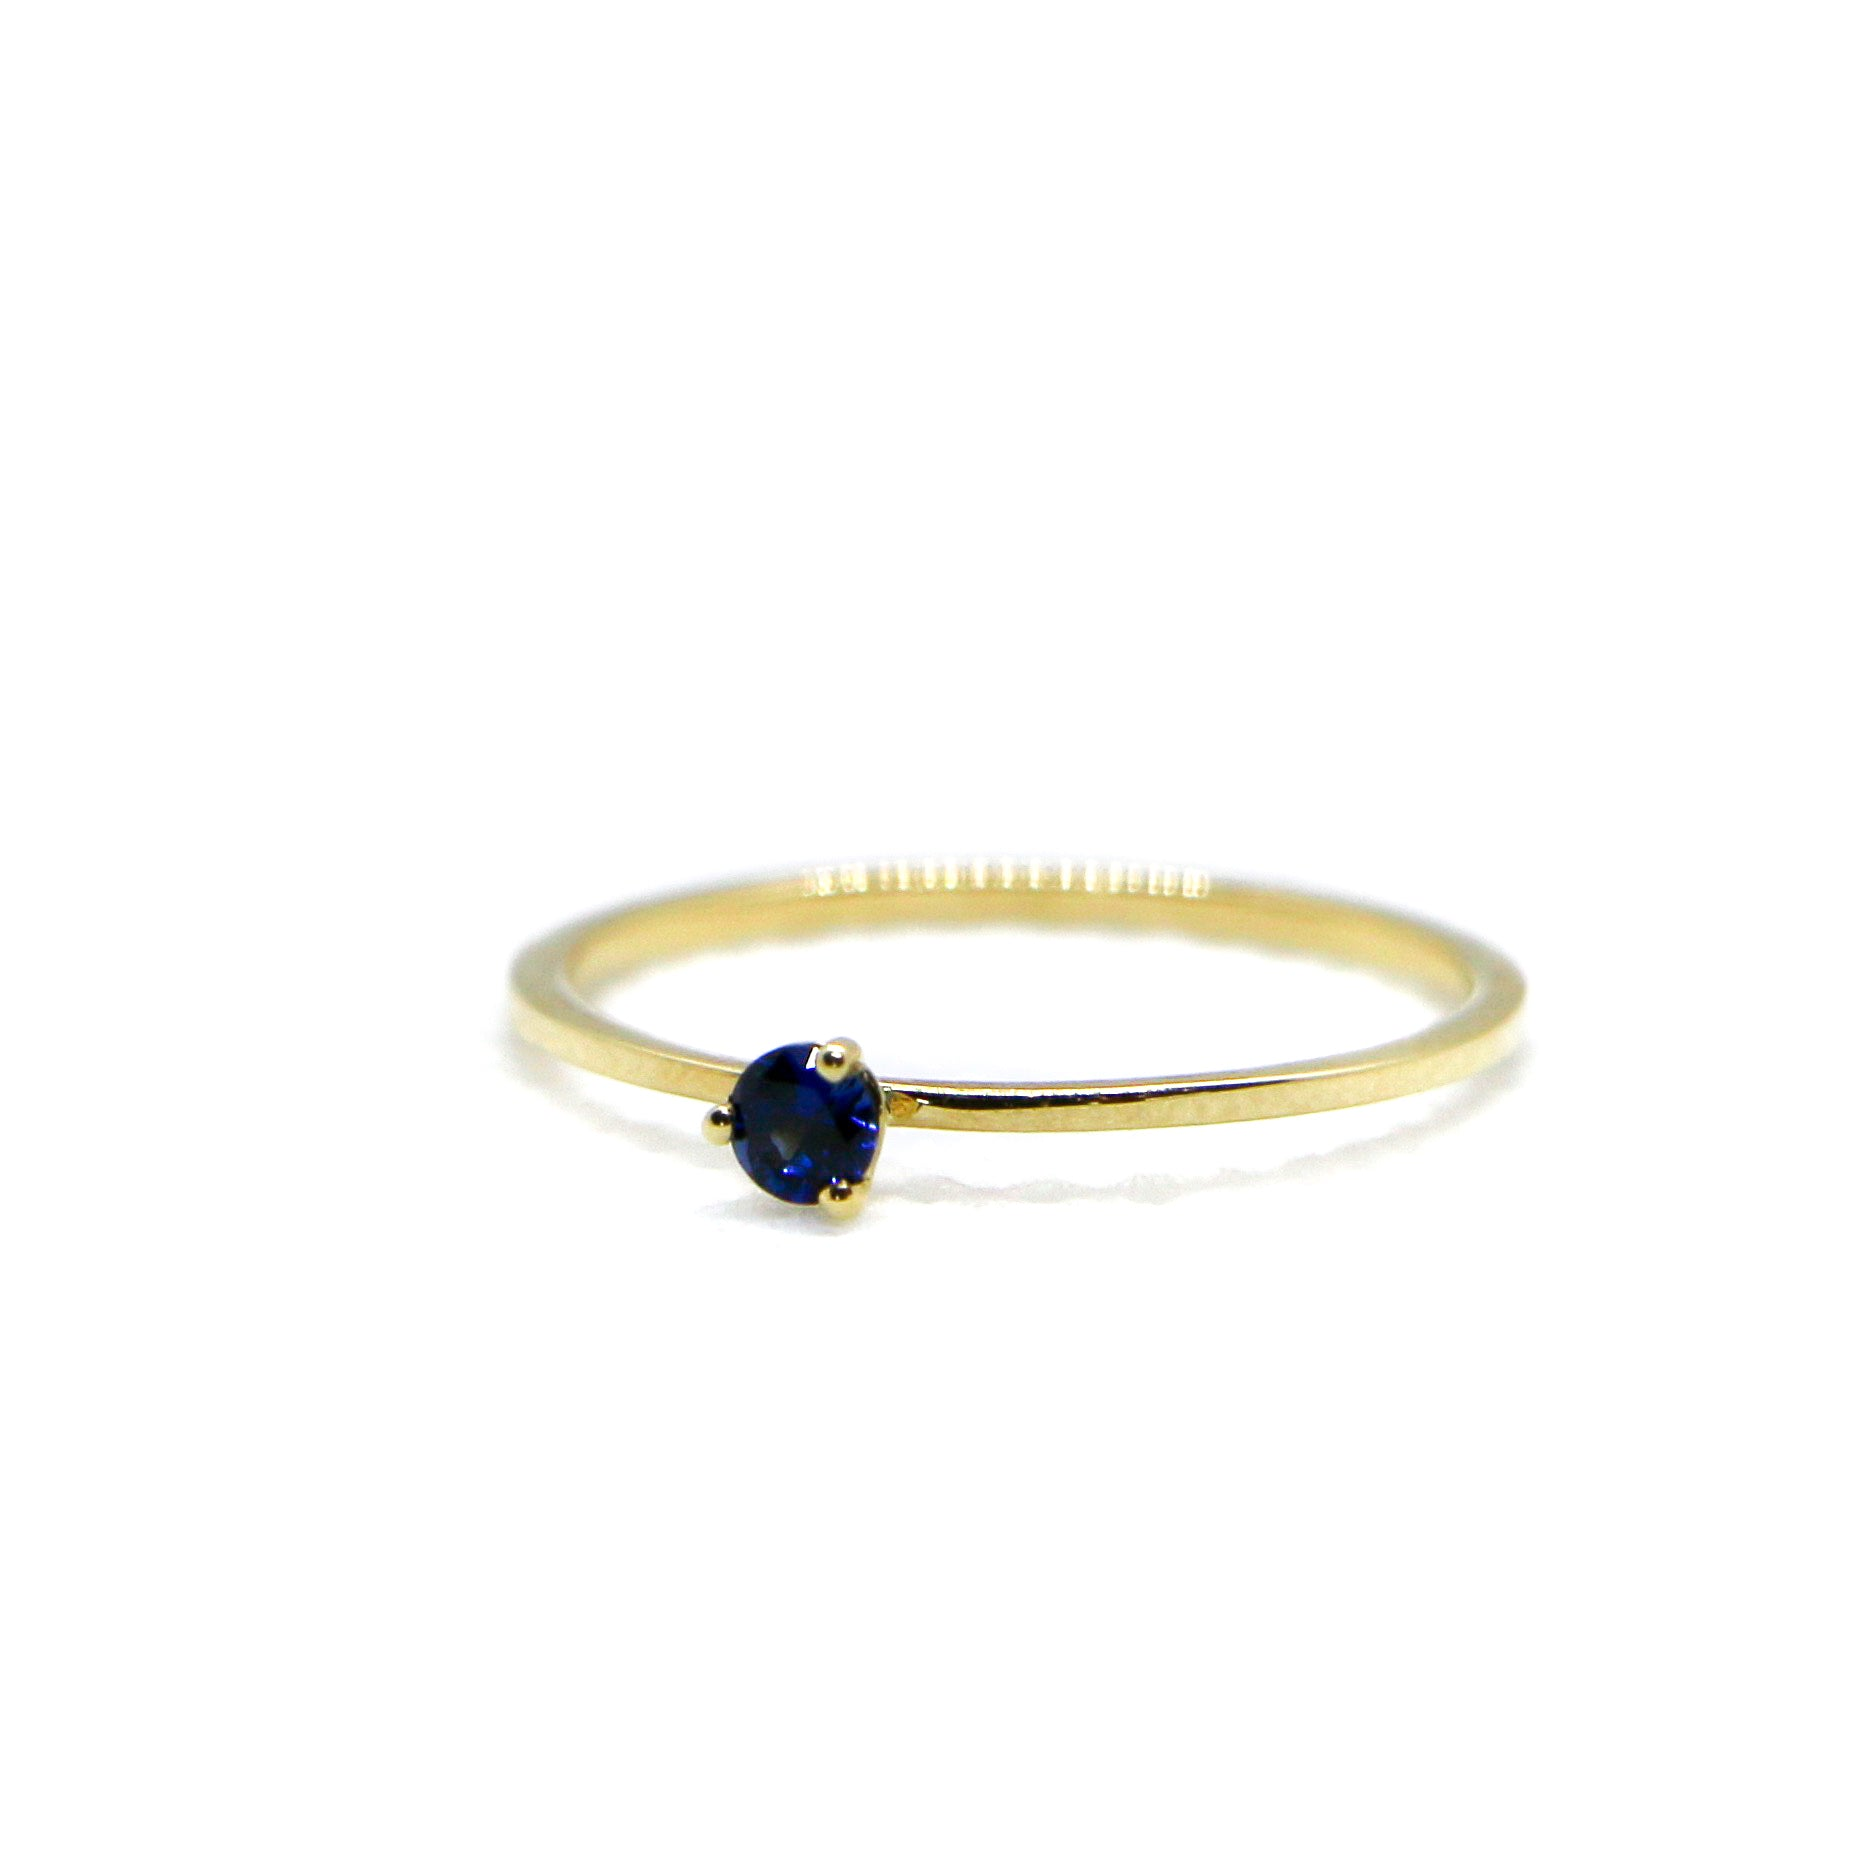 Hand Made September Birthstone and 14k Yellow Gold Stacking Ring